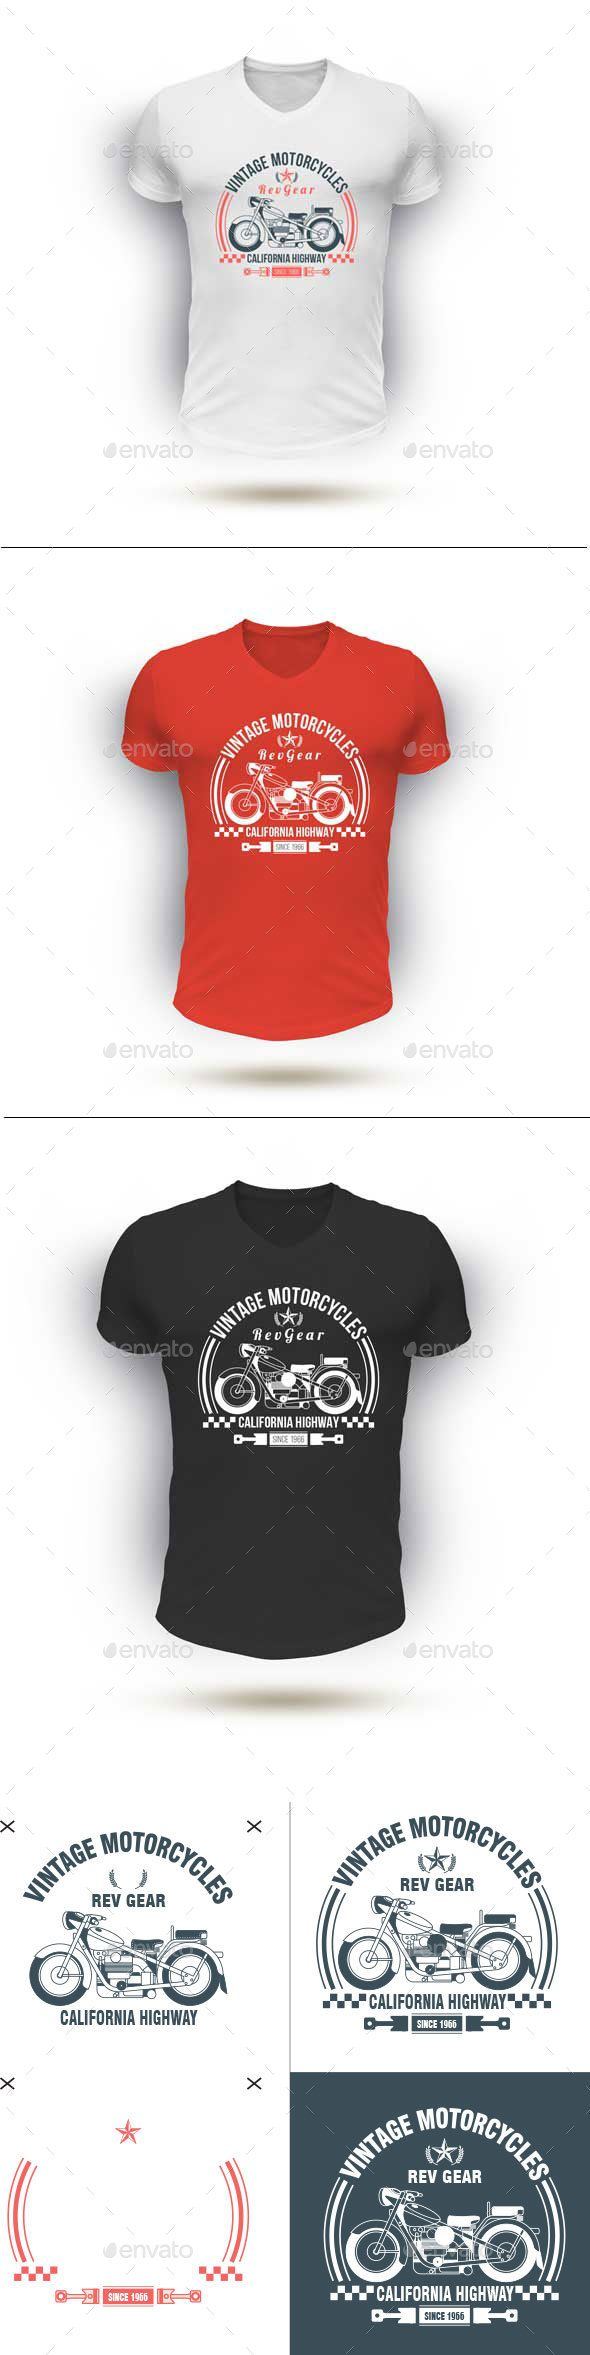 Cafe racer t shirt - #Designs #T-Shirts Download here:   https://graphicriver.net/item/cafe-racer-t-shirt/20294085?ref=alena994